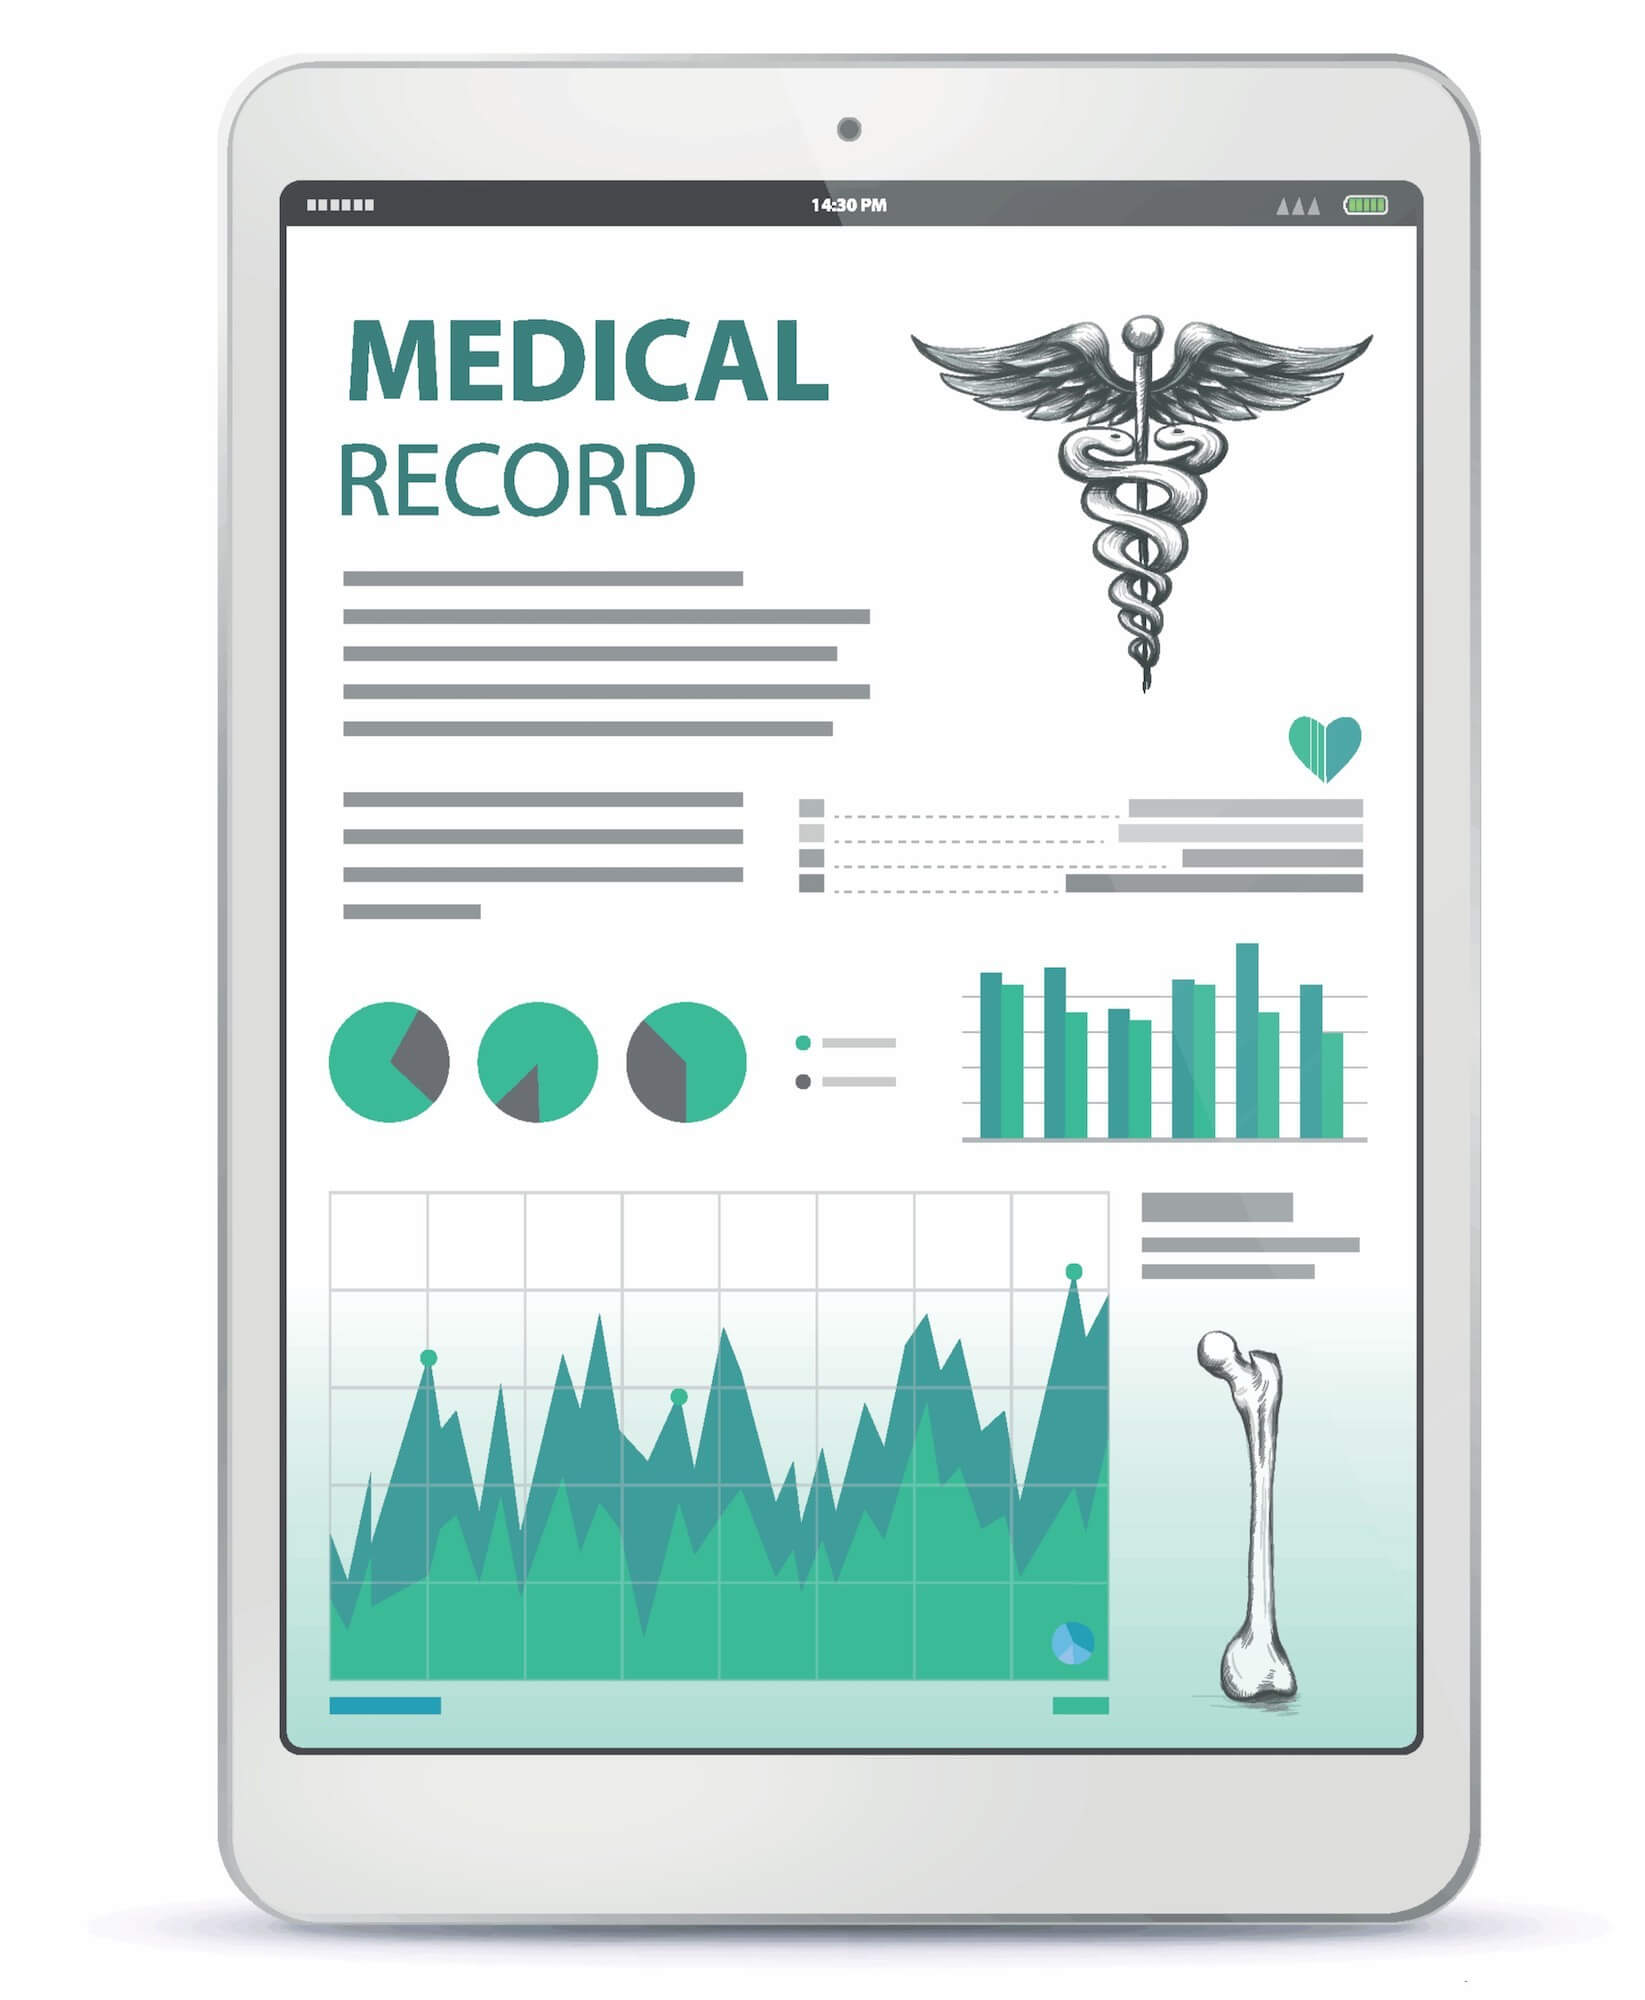 Graphical representation of electronic medical record displayed on a tablet with various medical charts, images, and text